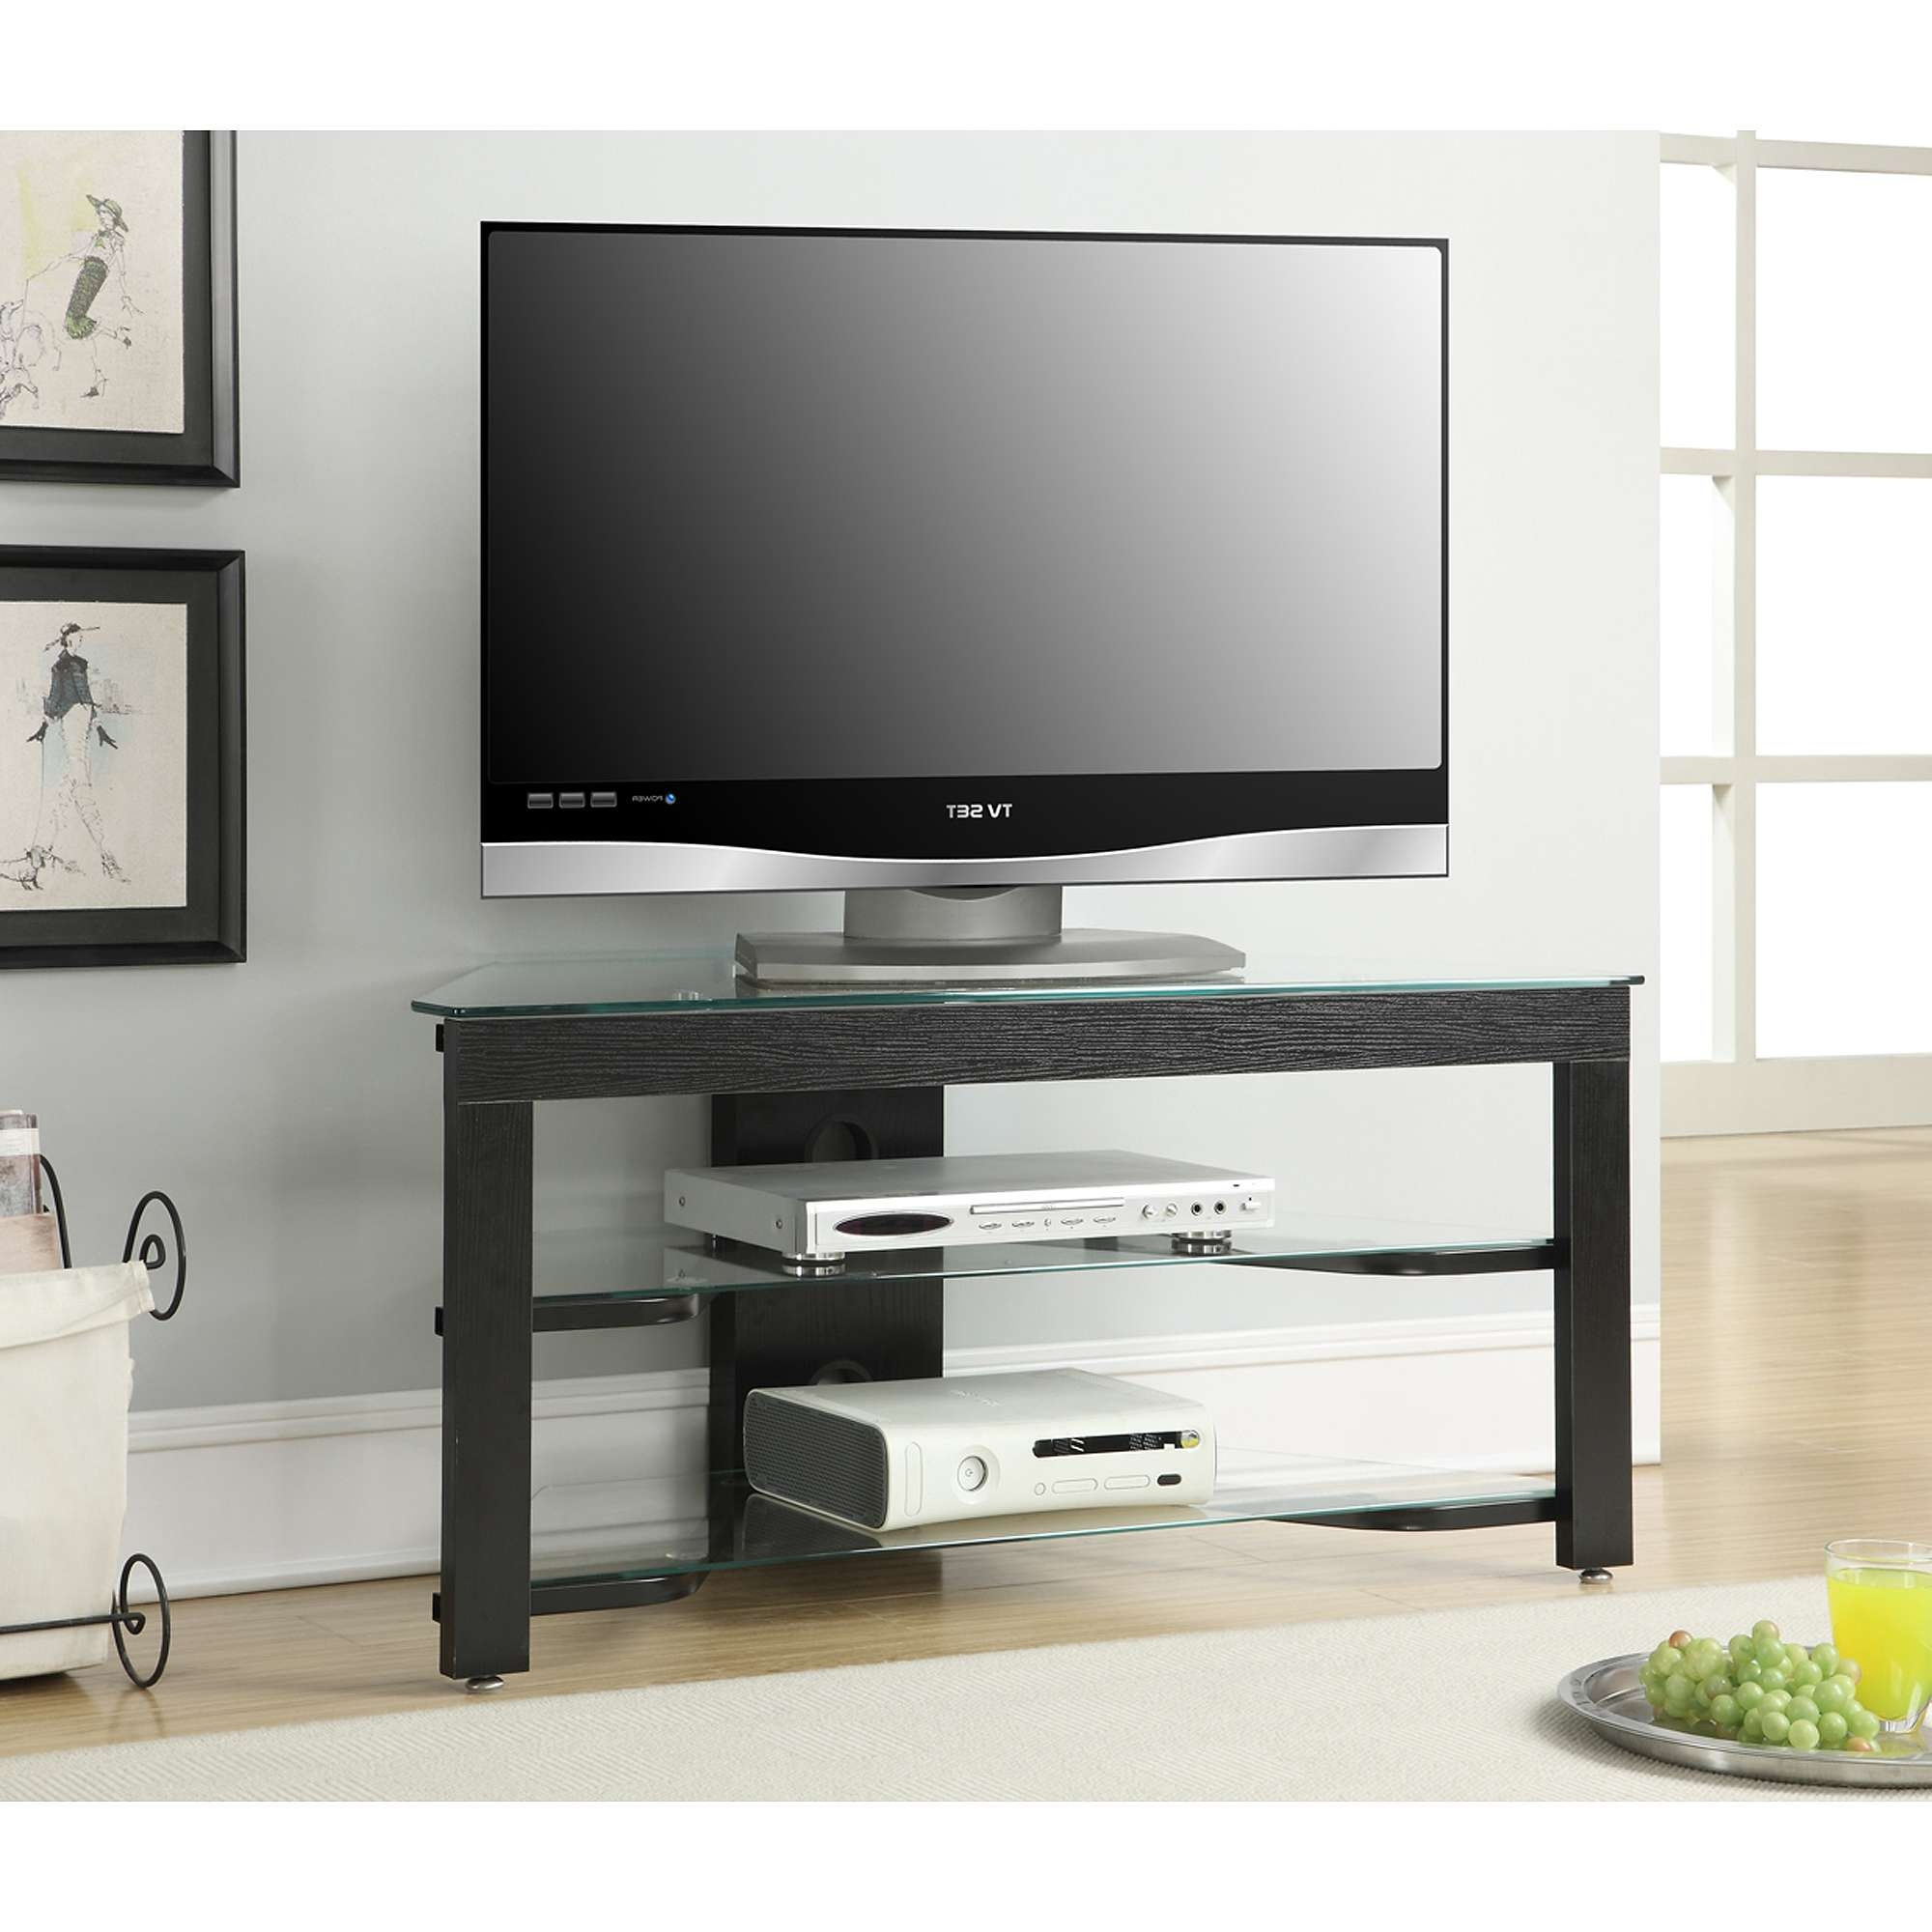 Convenience Concepts Designs2go Wood And Glass Tv Stand For Tvs Up With Regard To Wood Tv Stands With Glass (View 6 of 15)